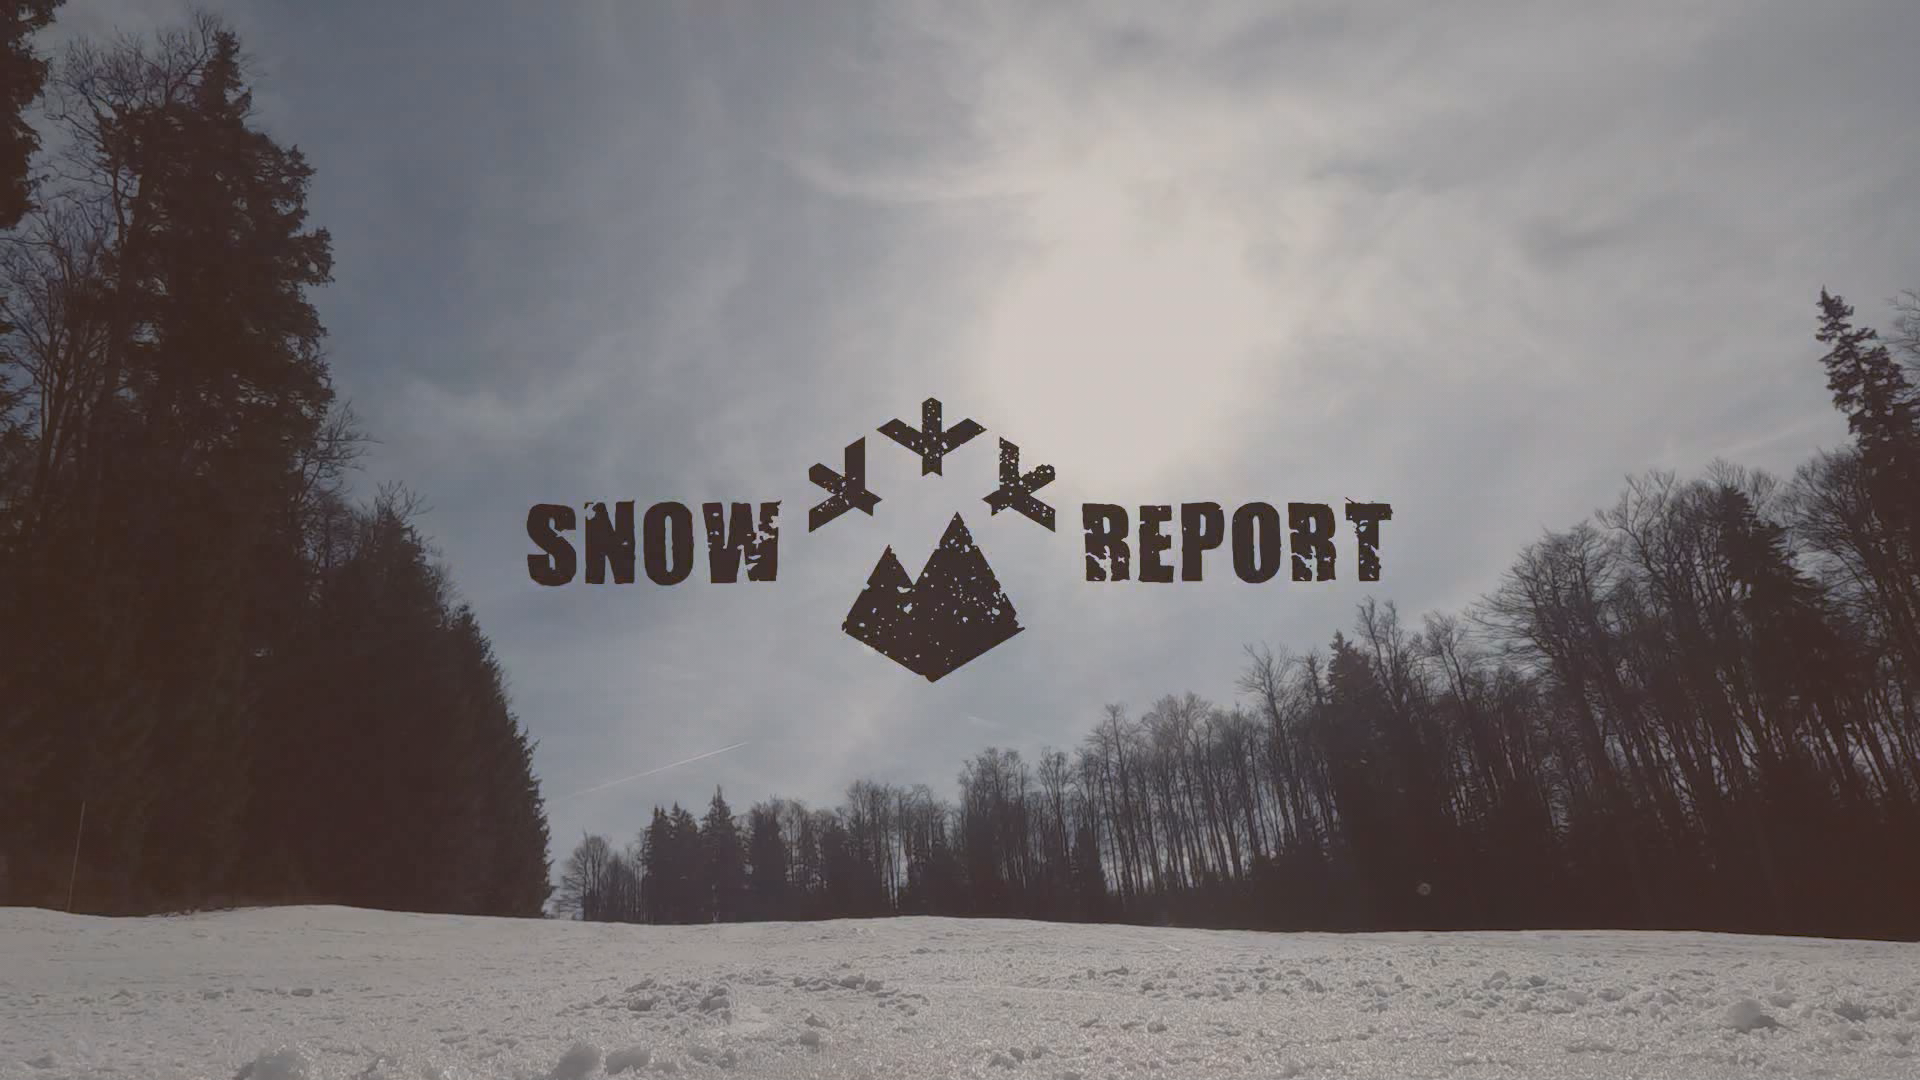 Snow report, magazin